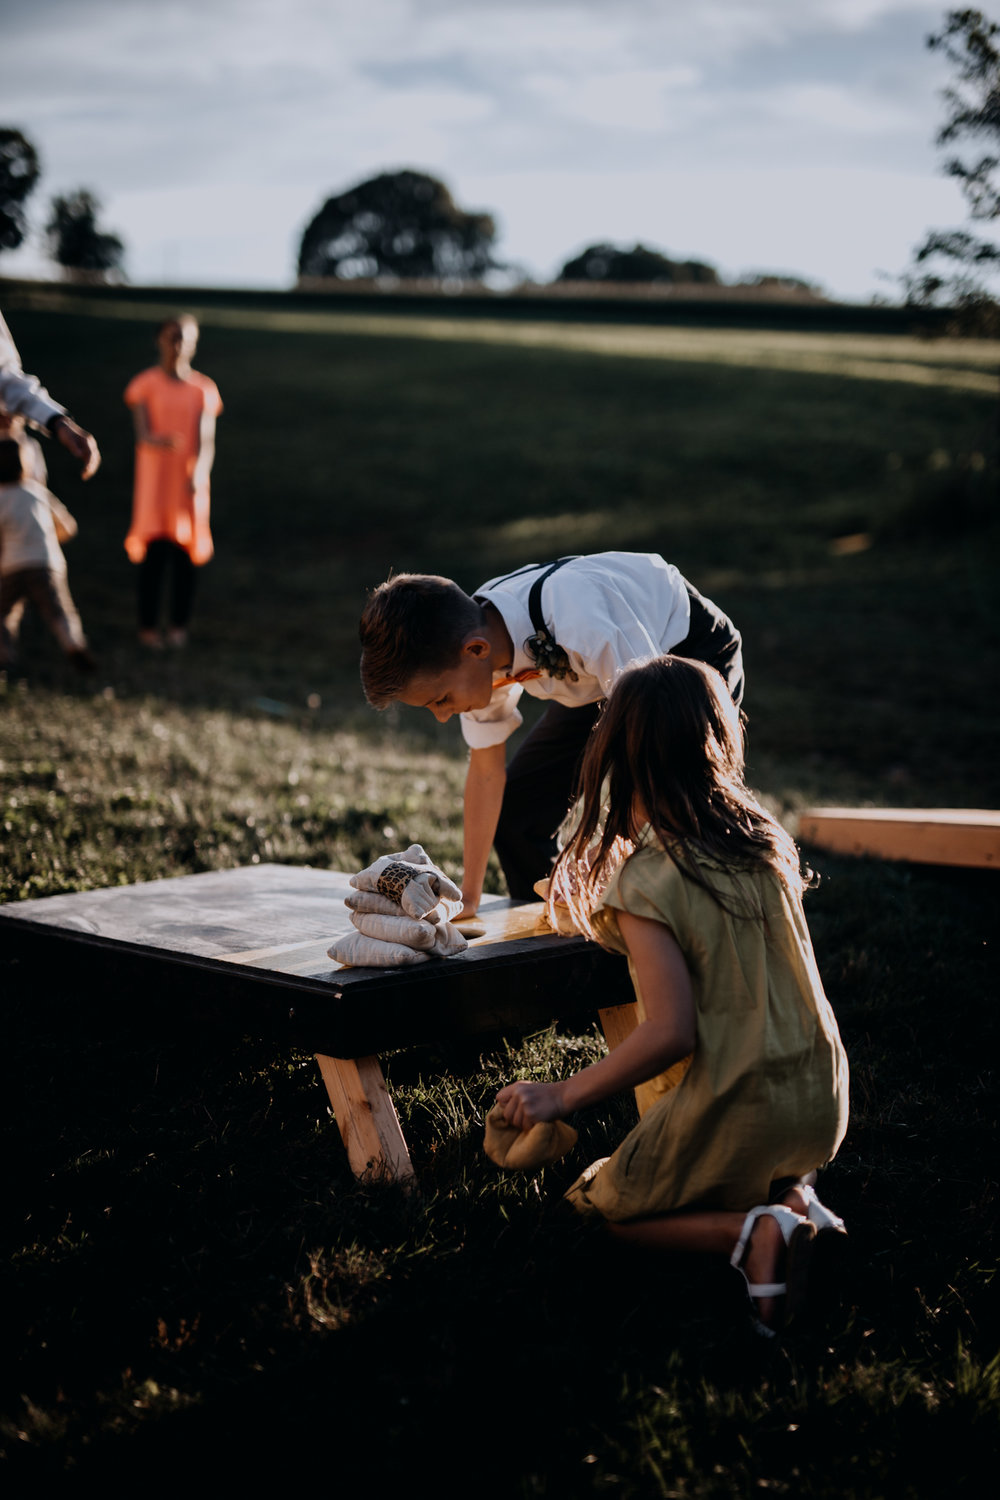 Cambria_Creative_Honeysuckle_Ridge_wedding_photography-2810.jpg